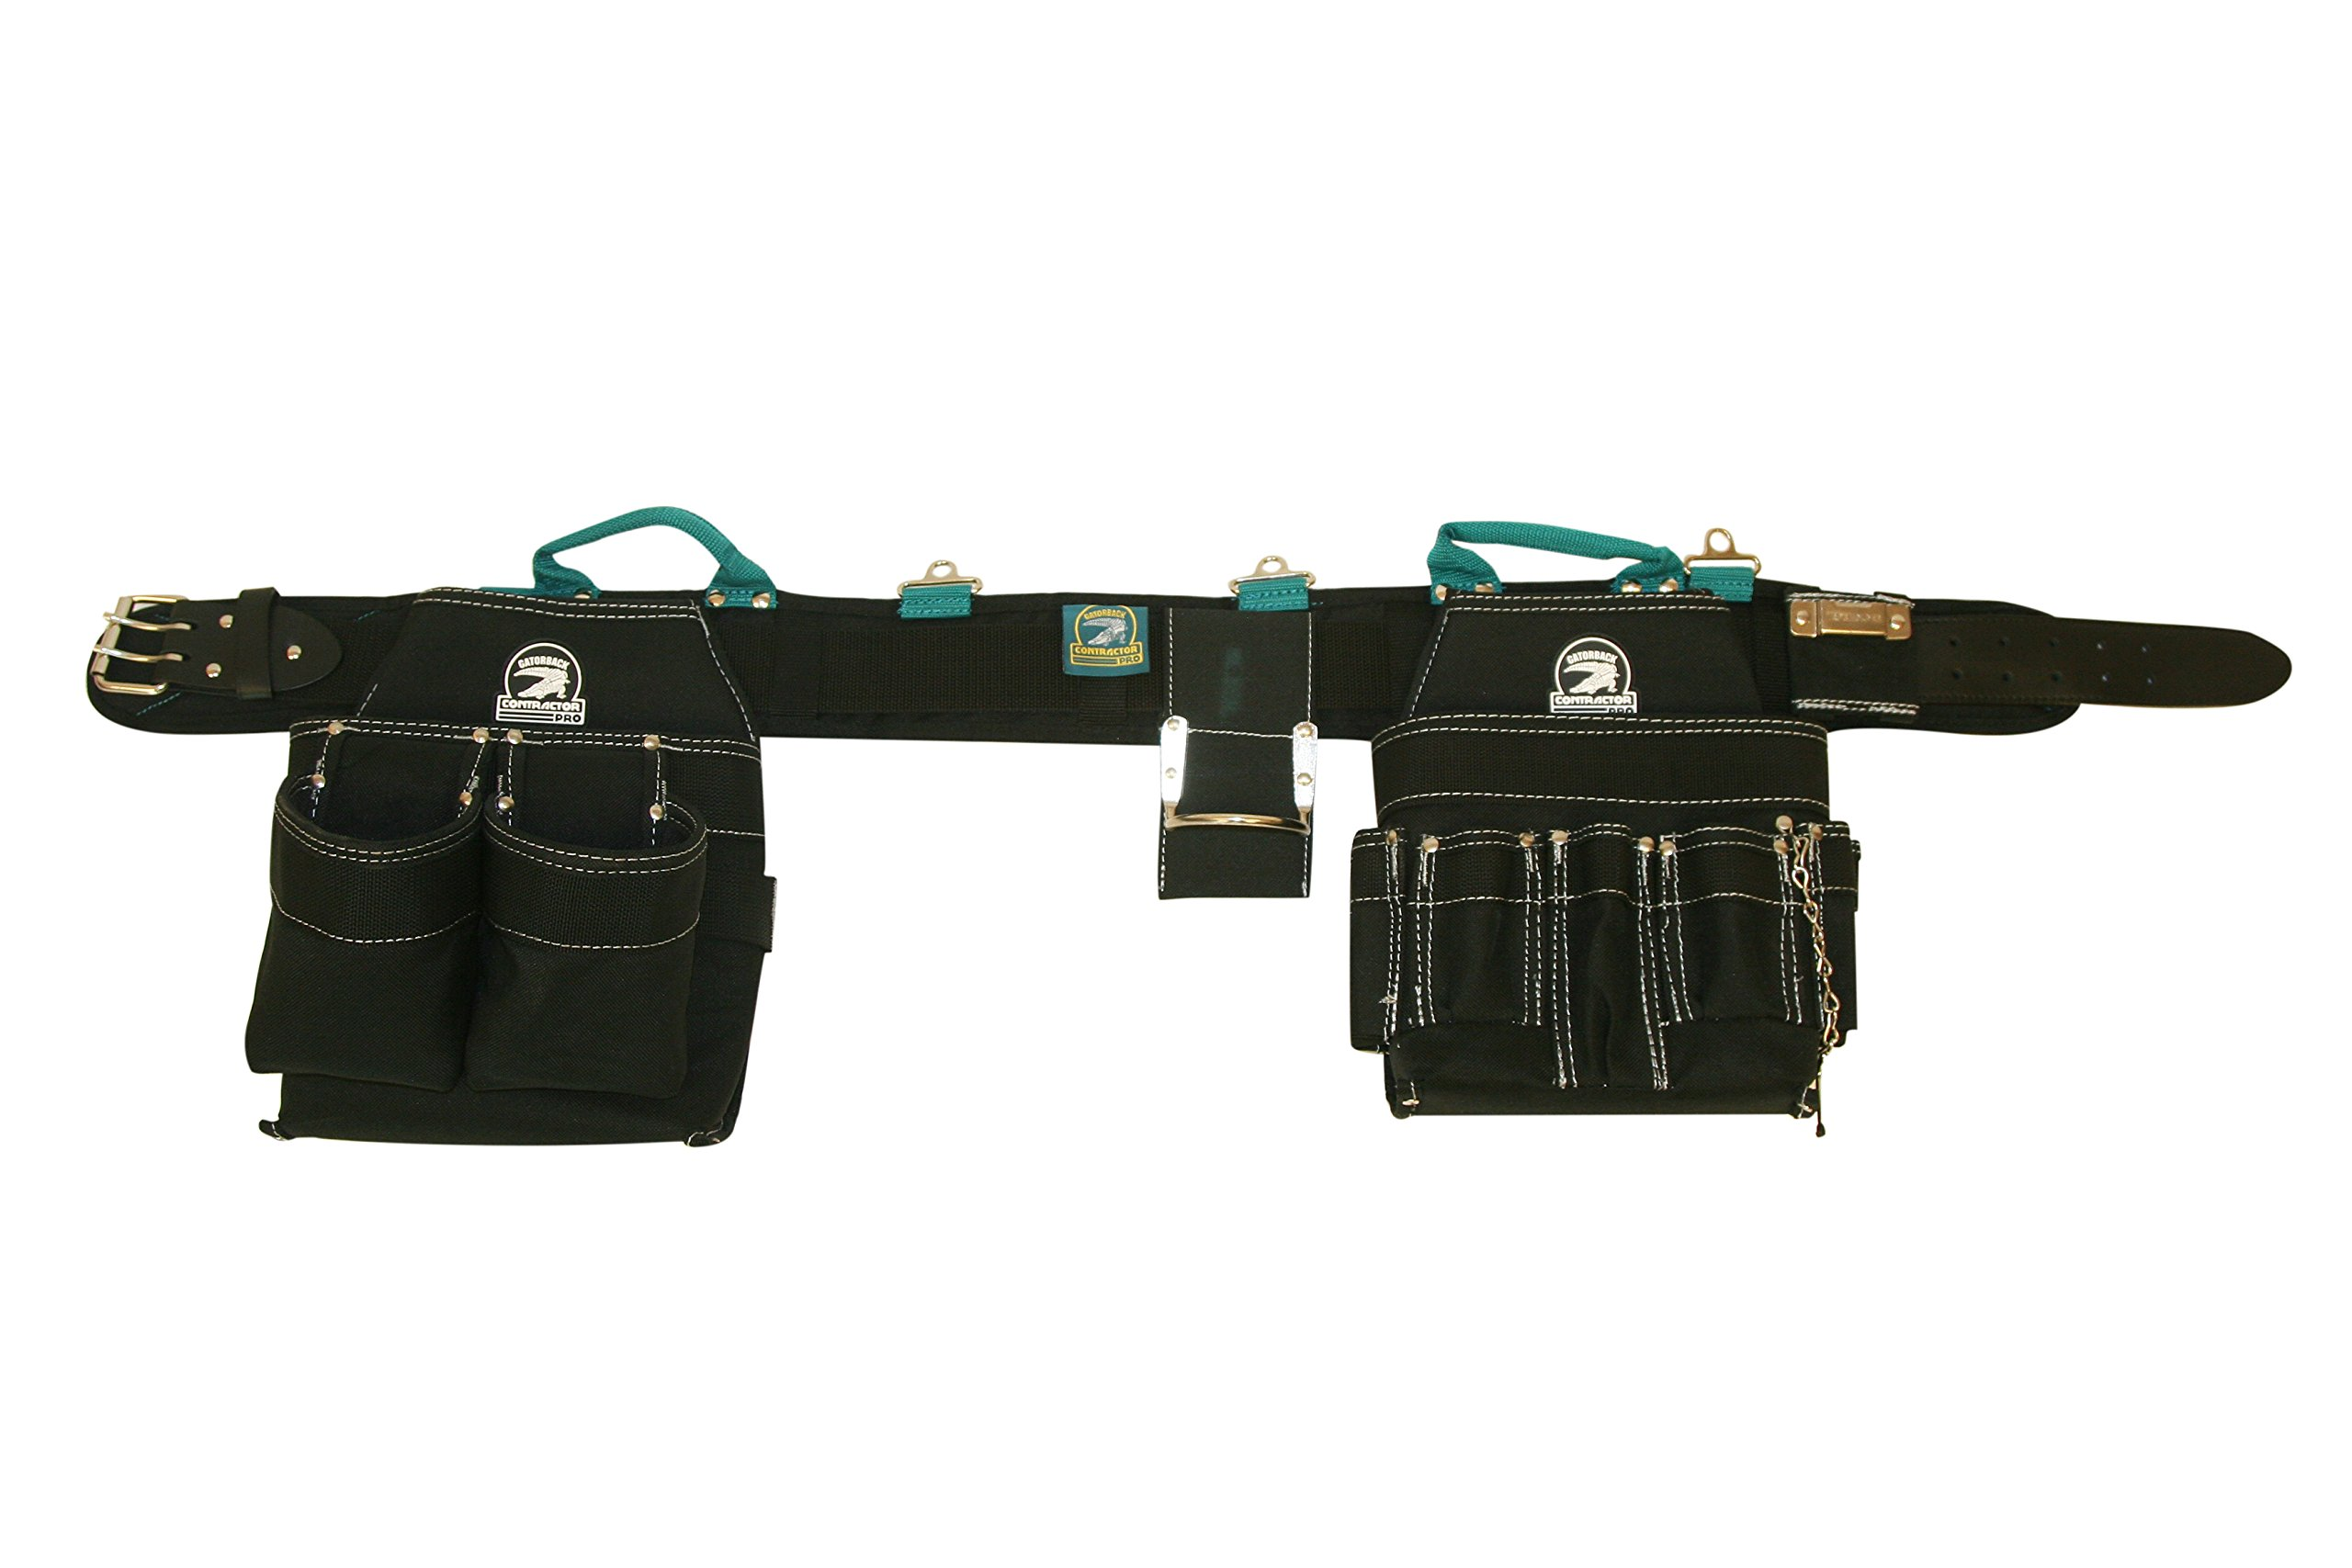 Gatorback Professional Electrician's Tool Belt Combo w/ Padded Comfort Belt (Medium 31-34 Inch Waist). Ventilated Comfort Belt with Heavy Duty Pouches for Electricians, Carpenters, Hvac, Drywaller. by Contractor Pro (Image #1)